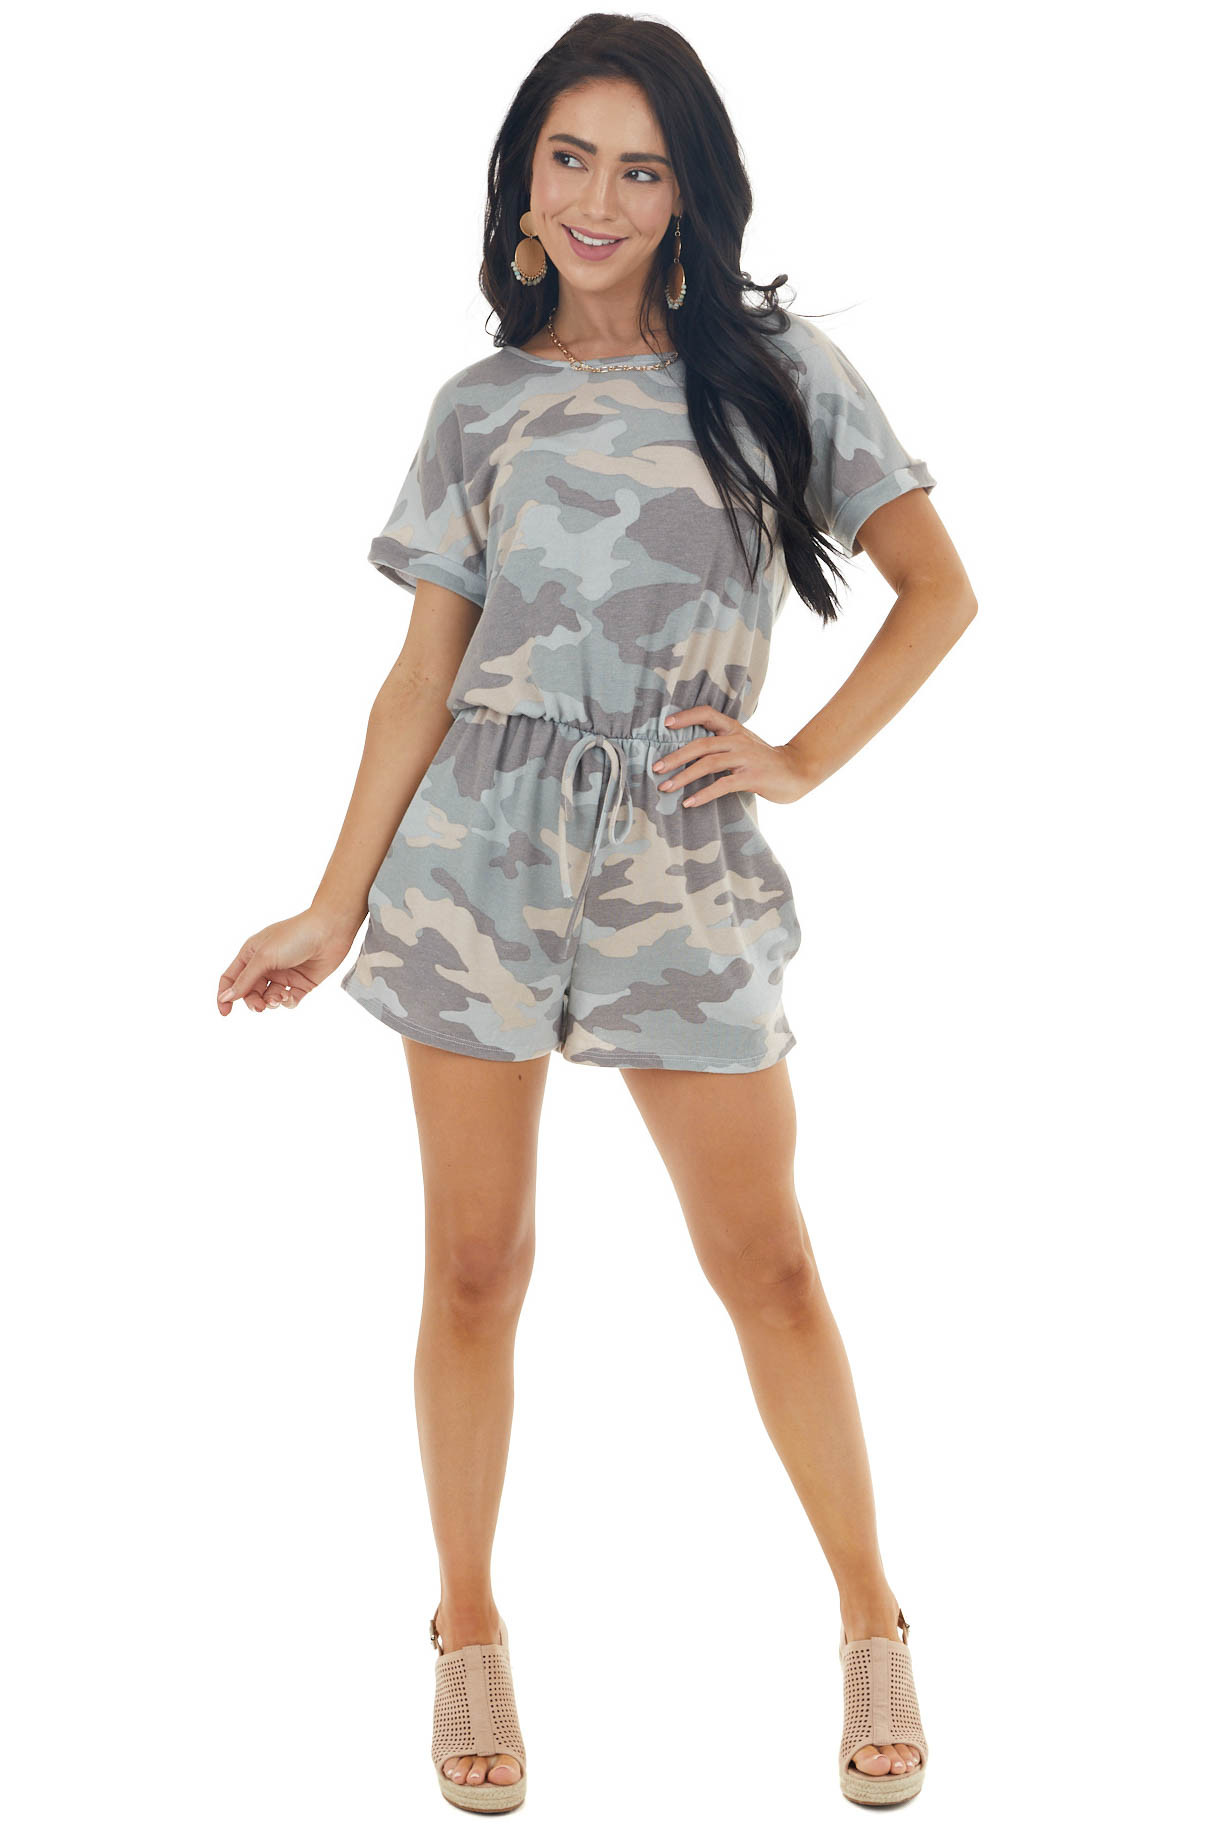 Ash Grey Camo Print Short Sleeve Knit Romper with Tie Detail